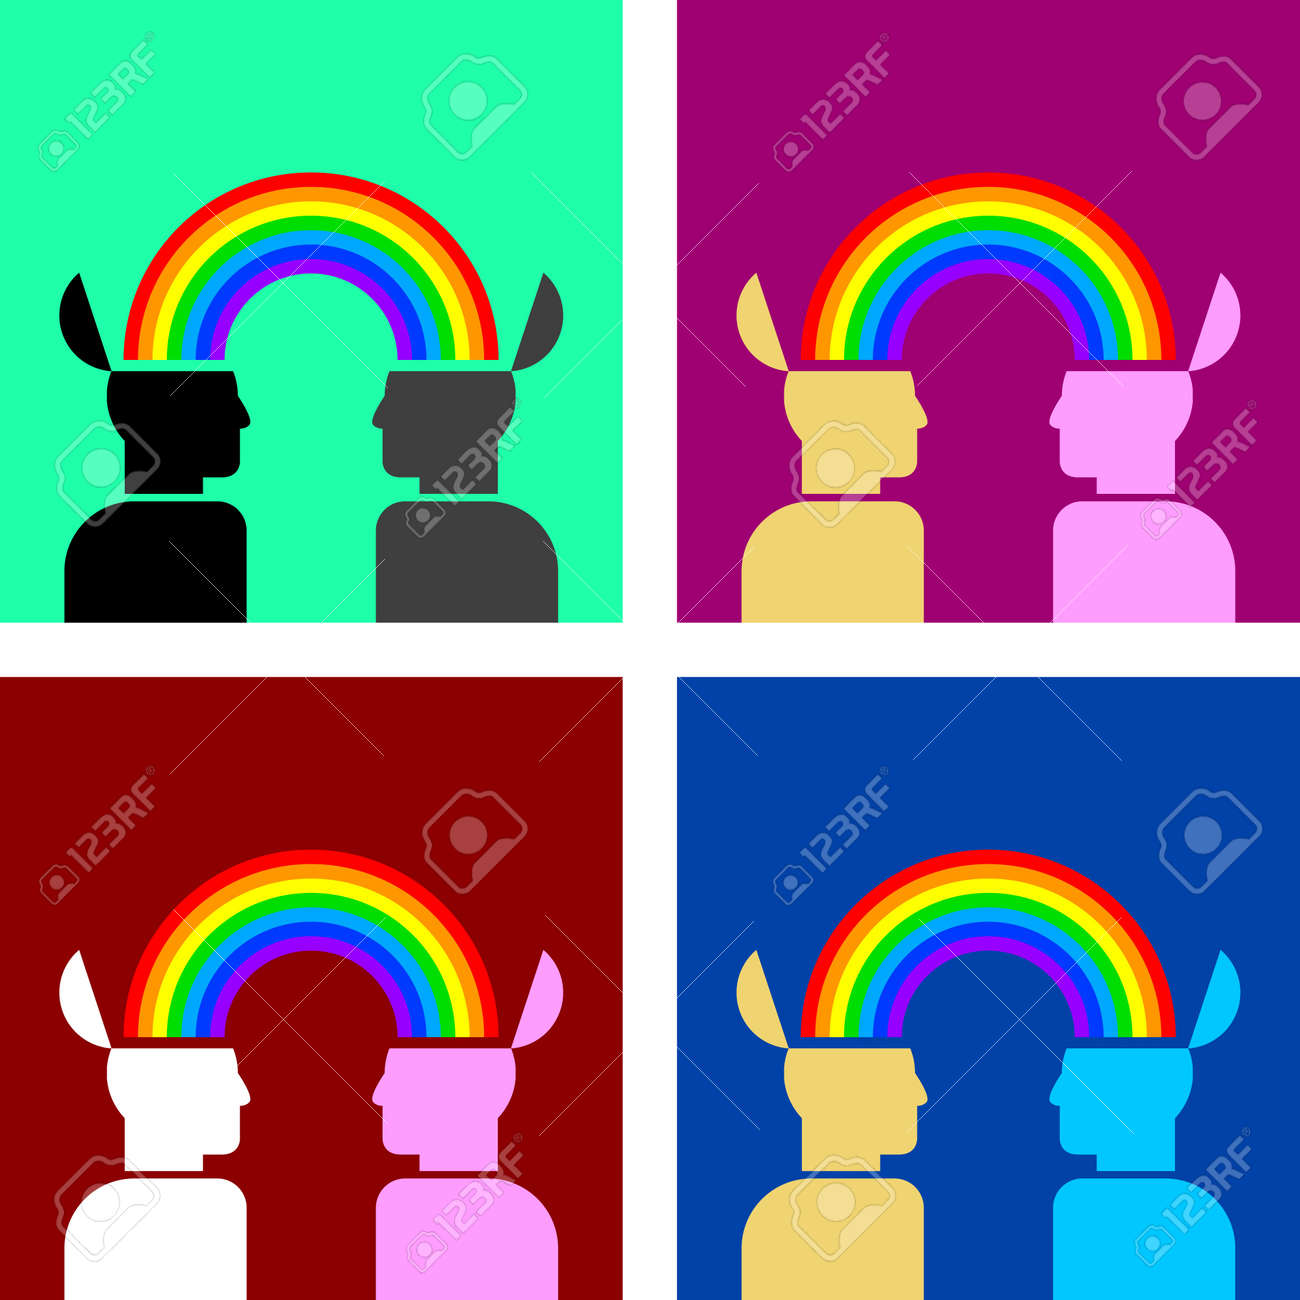 colorful image of rainbow connecting people Stock Vector - 16759167